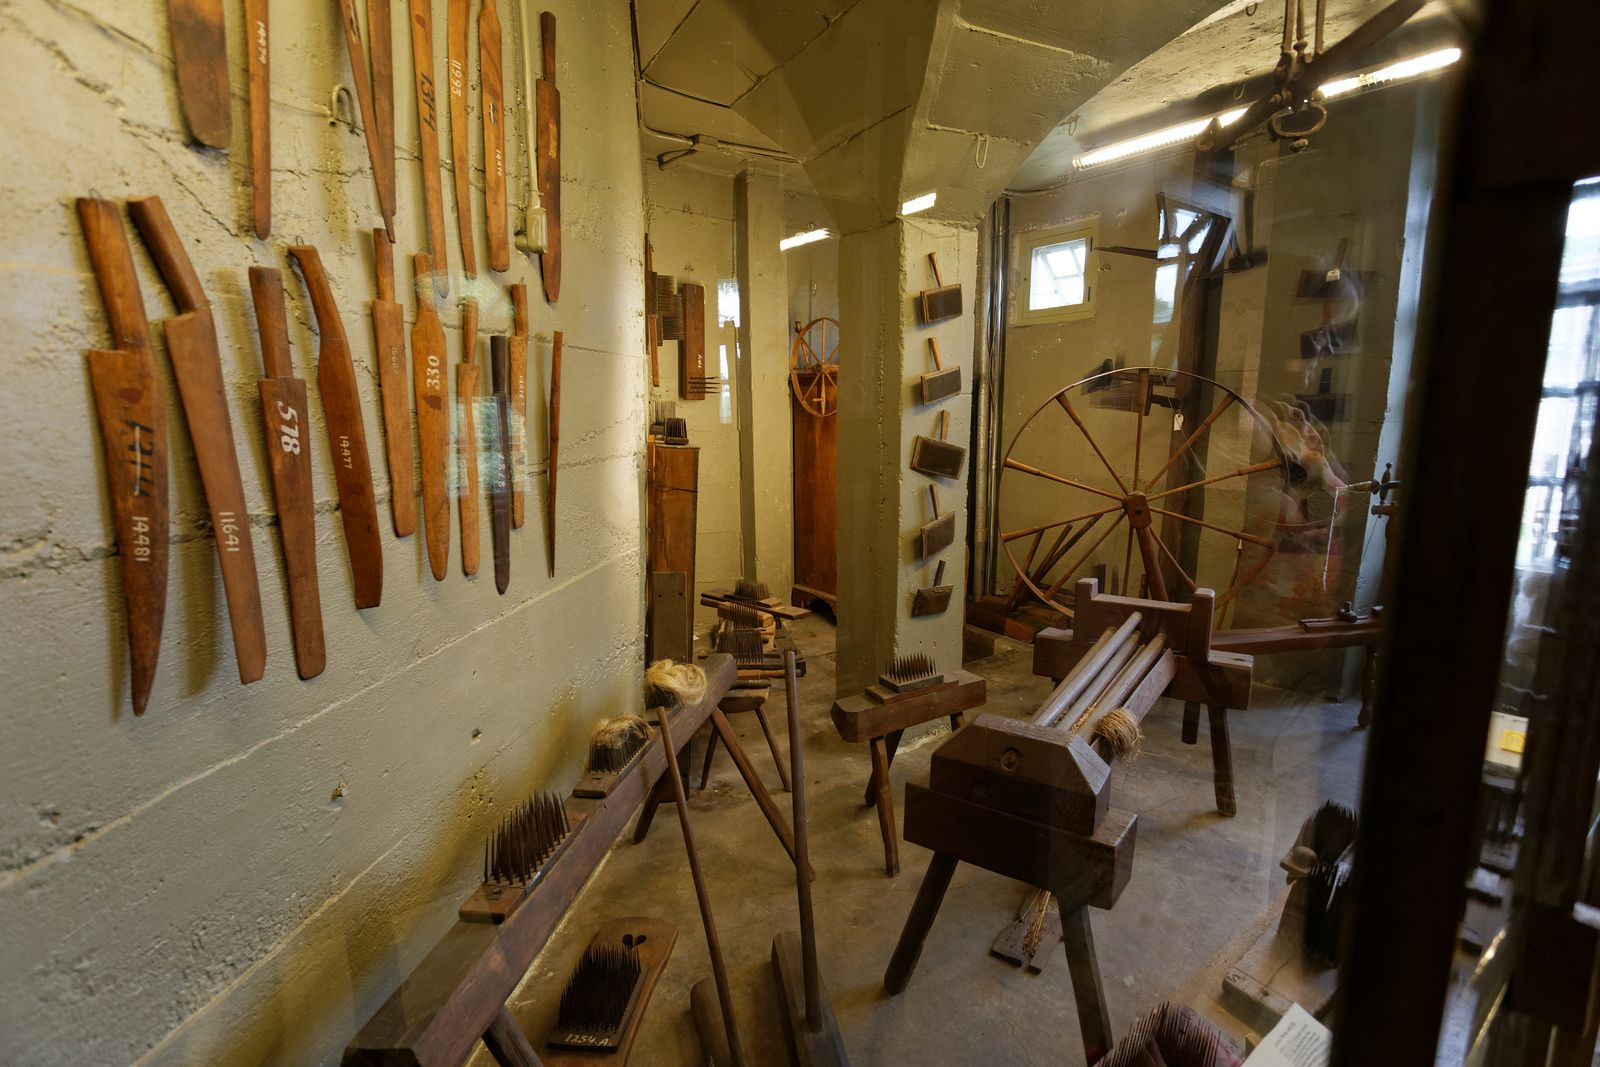 Mercer museum. Early American tools. | Colonial, Frontier Houses, cab ...